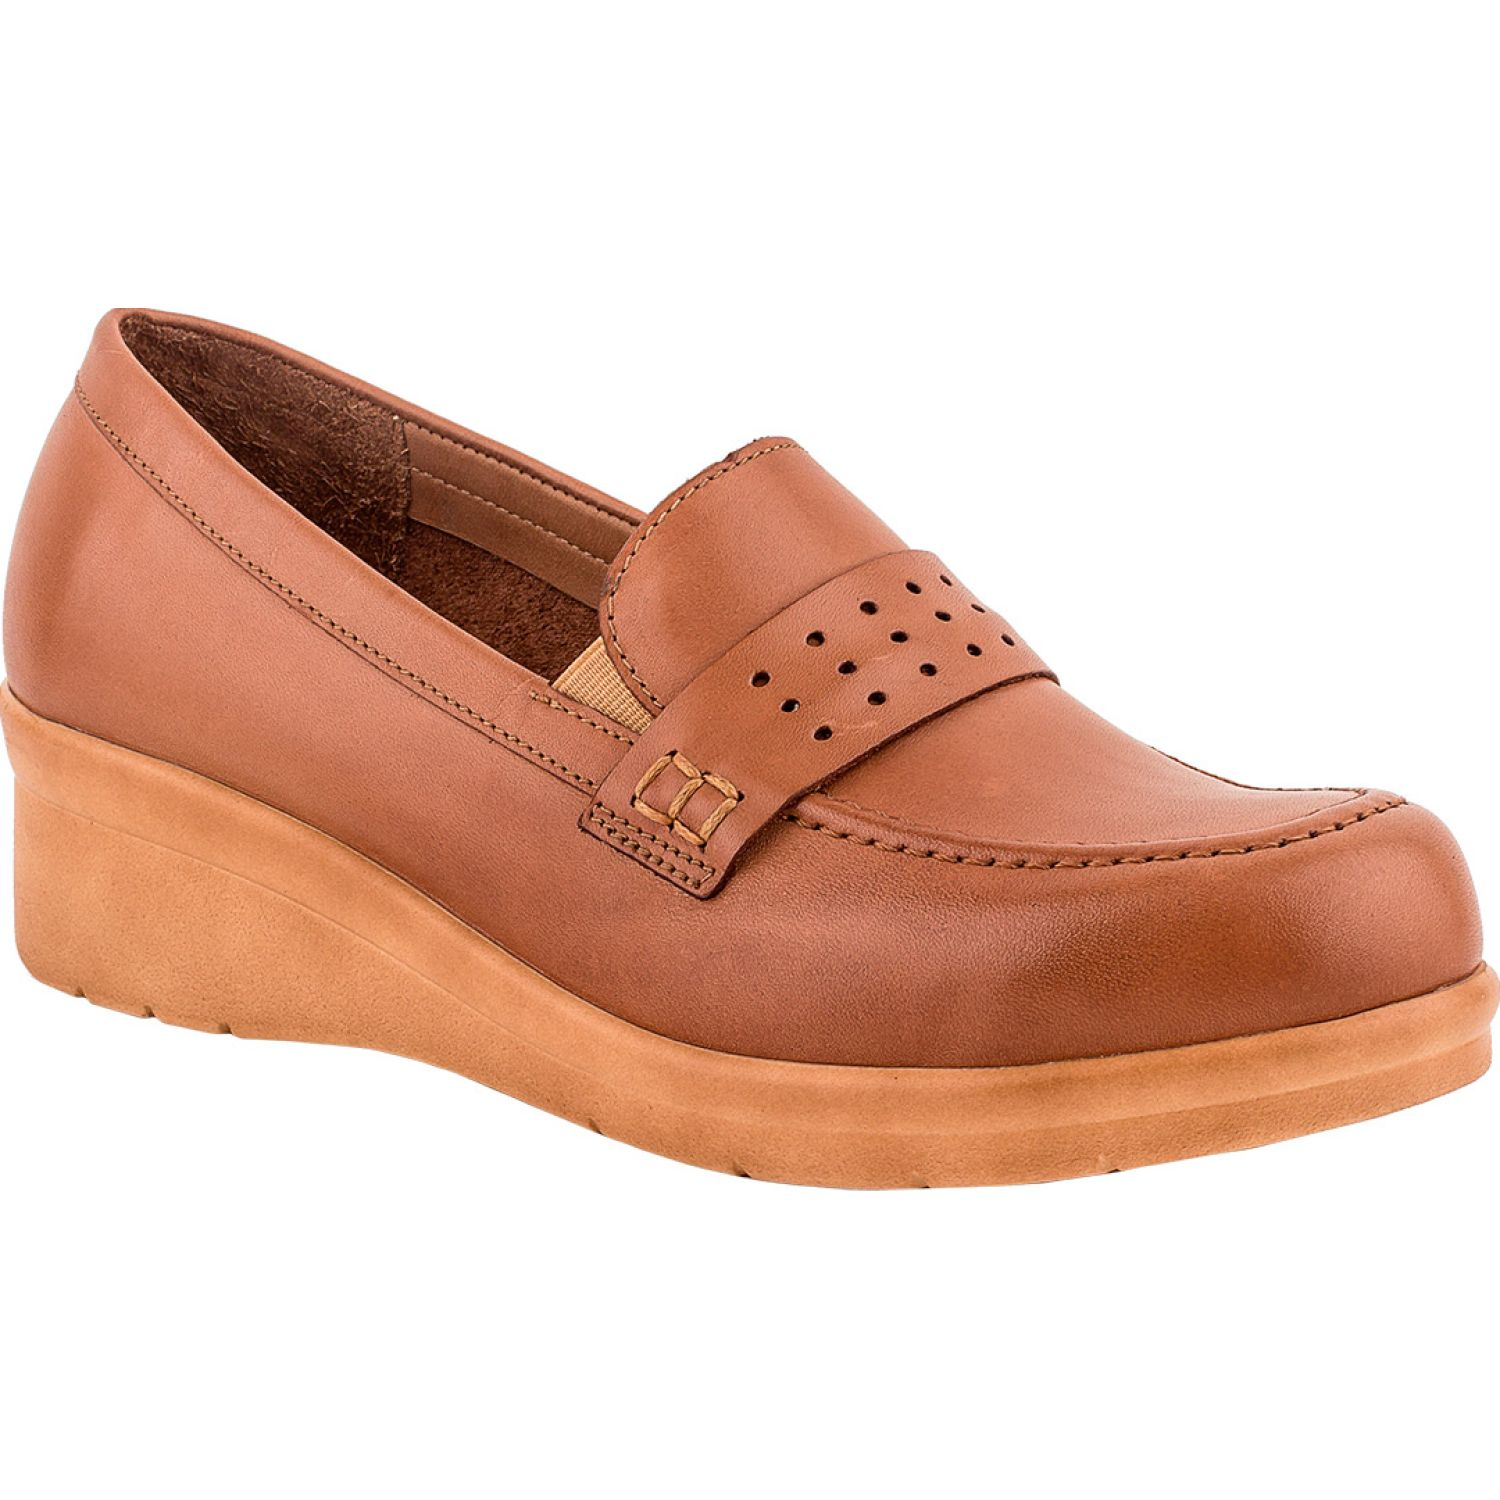 Ecco JEANETTE07 Caramelo Mocasines y Slip-Ons